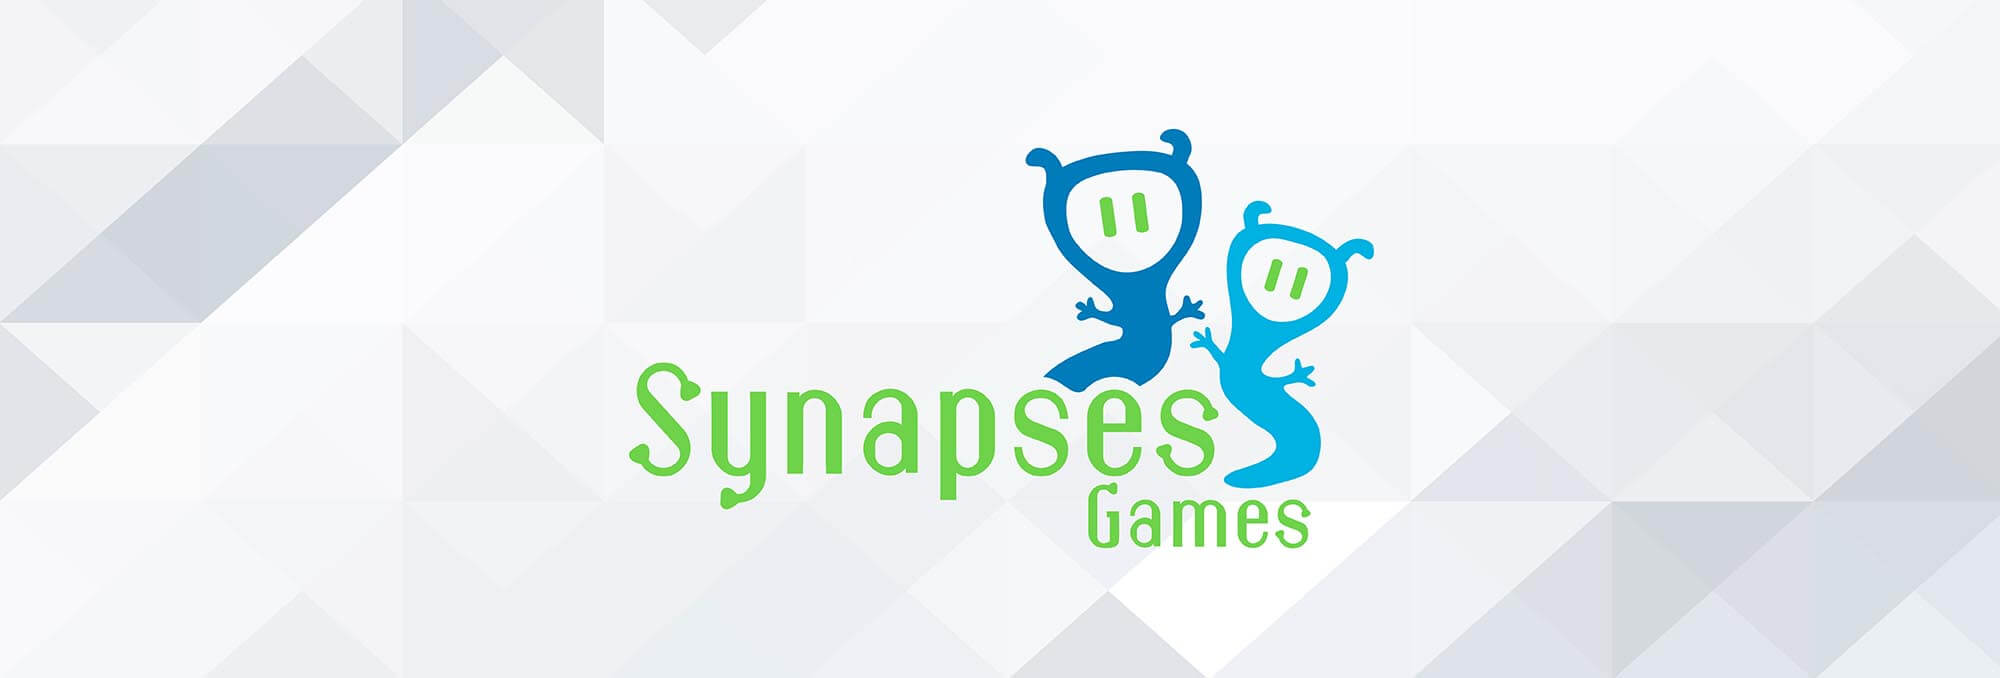 01_Slide-Synapses-Games